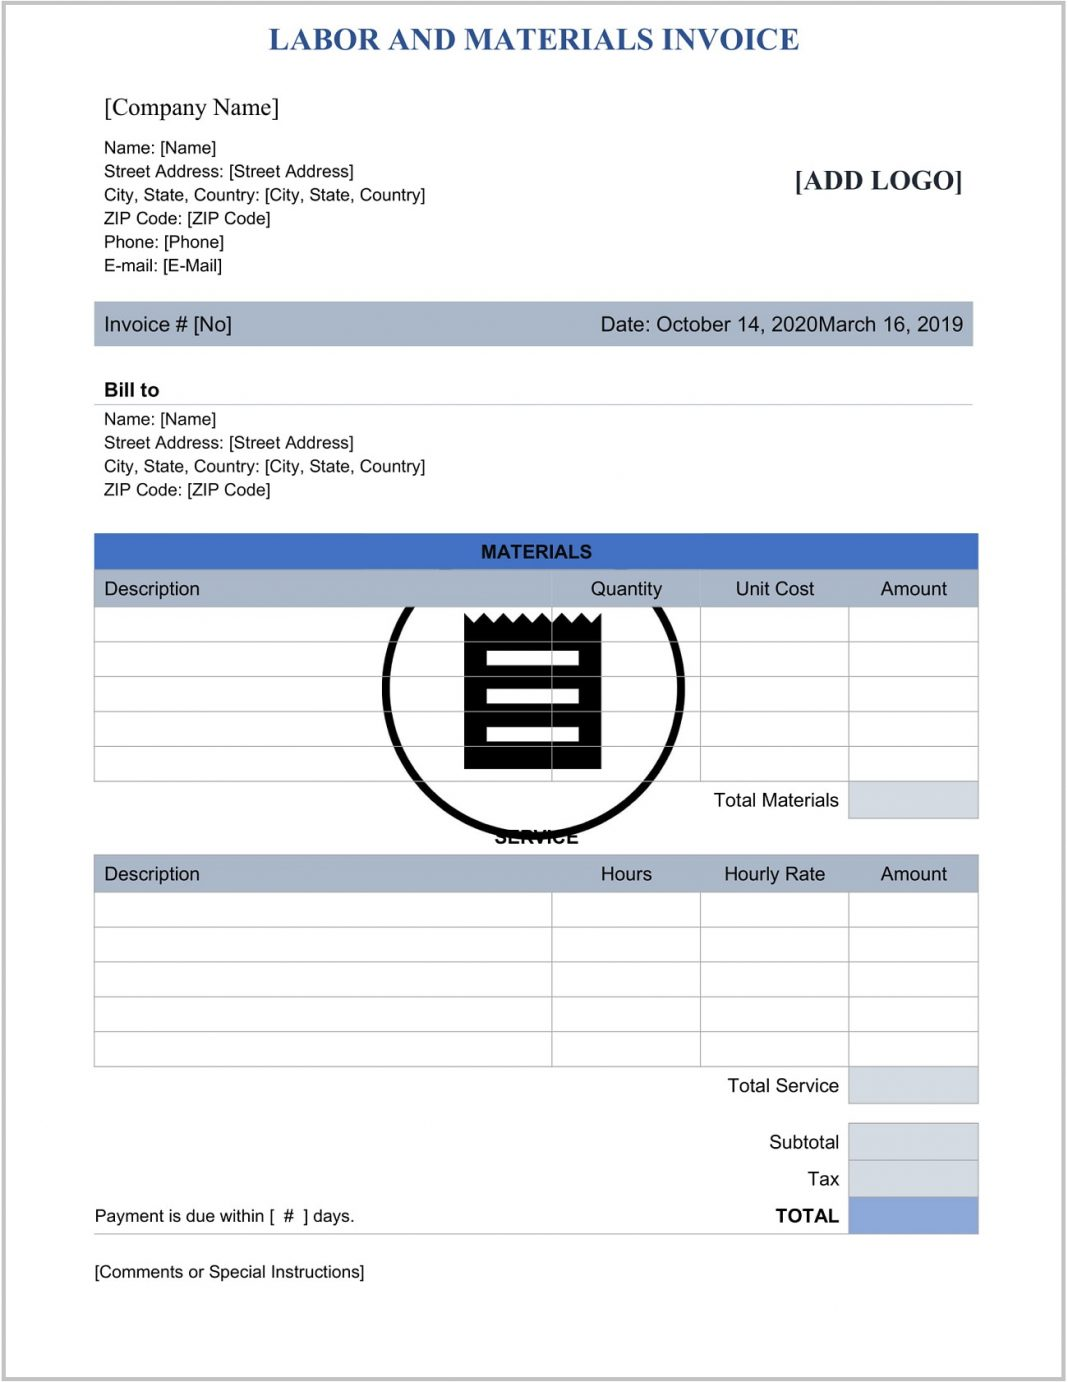 Labor Materials Invoice Template Word Format Free Printable Construction Labour Only Sample Contractor Bill In Excel  And Example Large